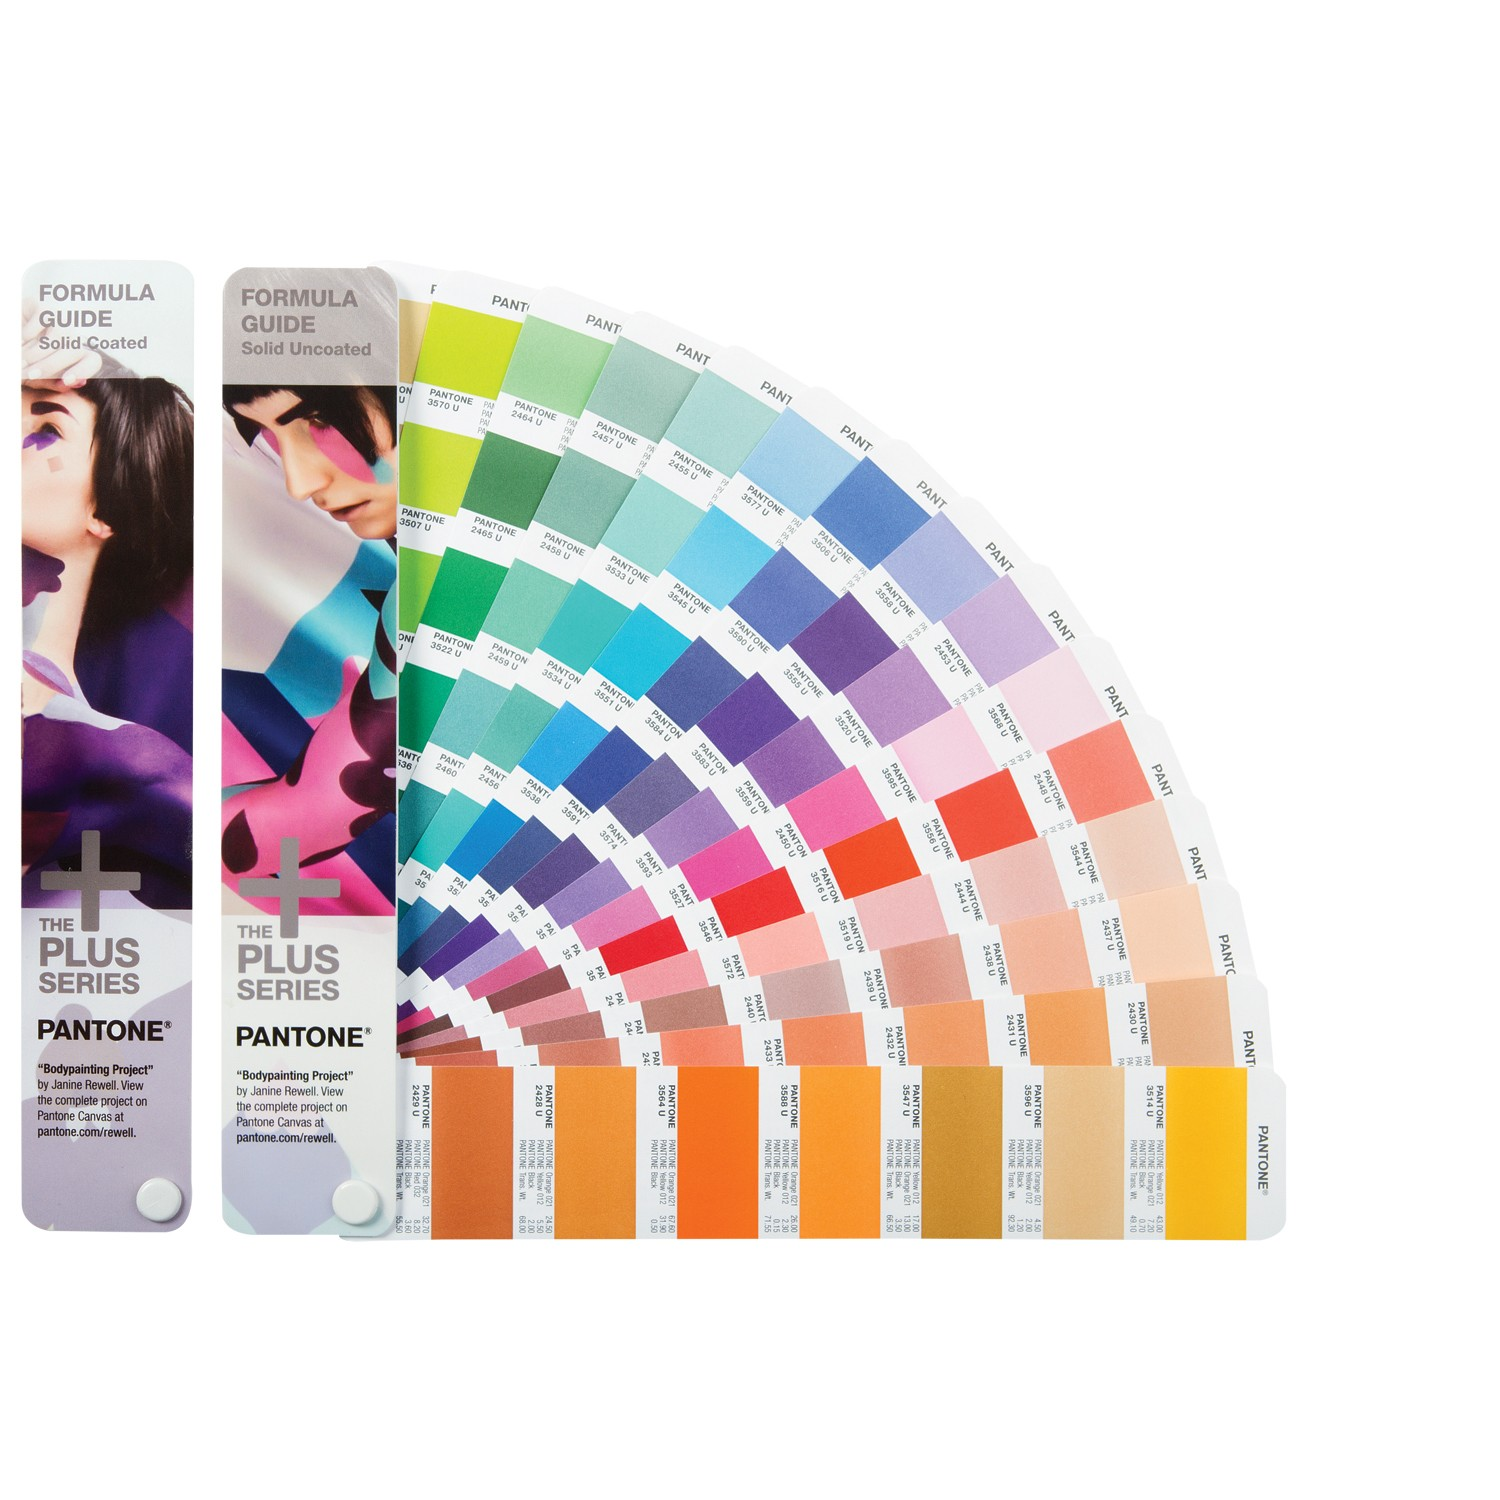 Image provided by  pantone.com